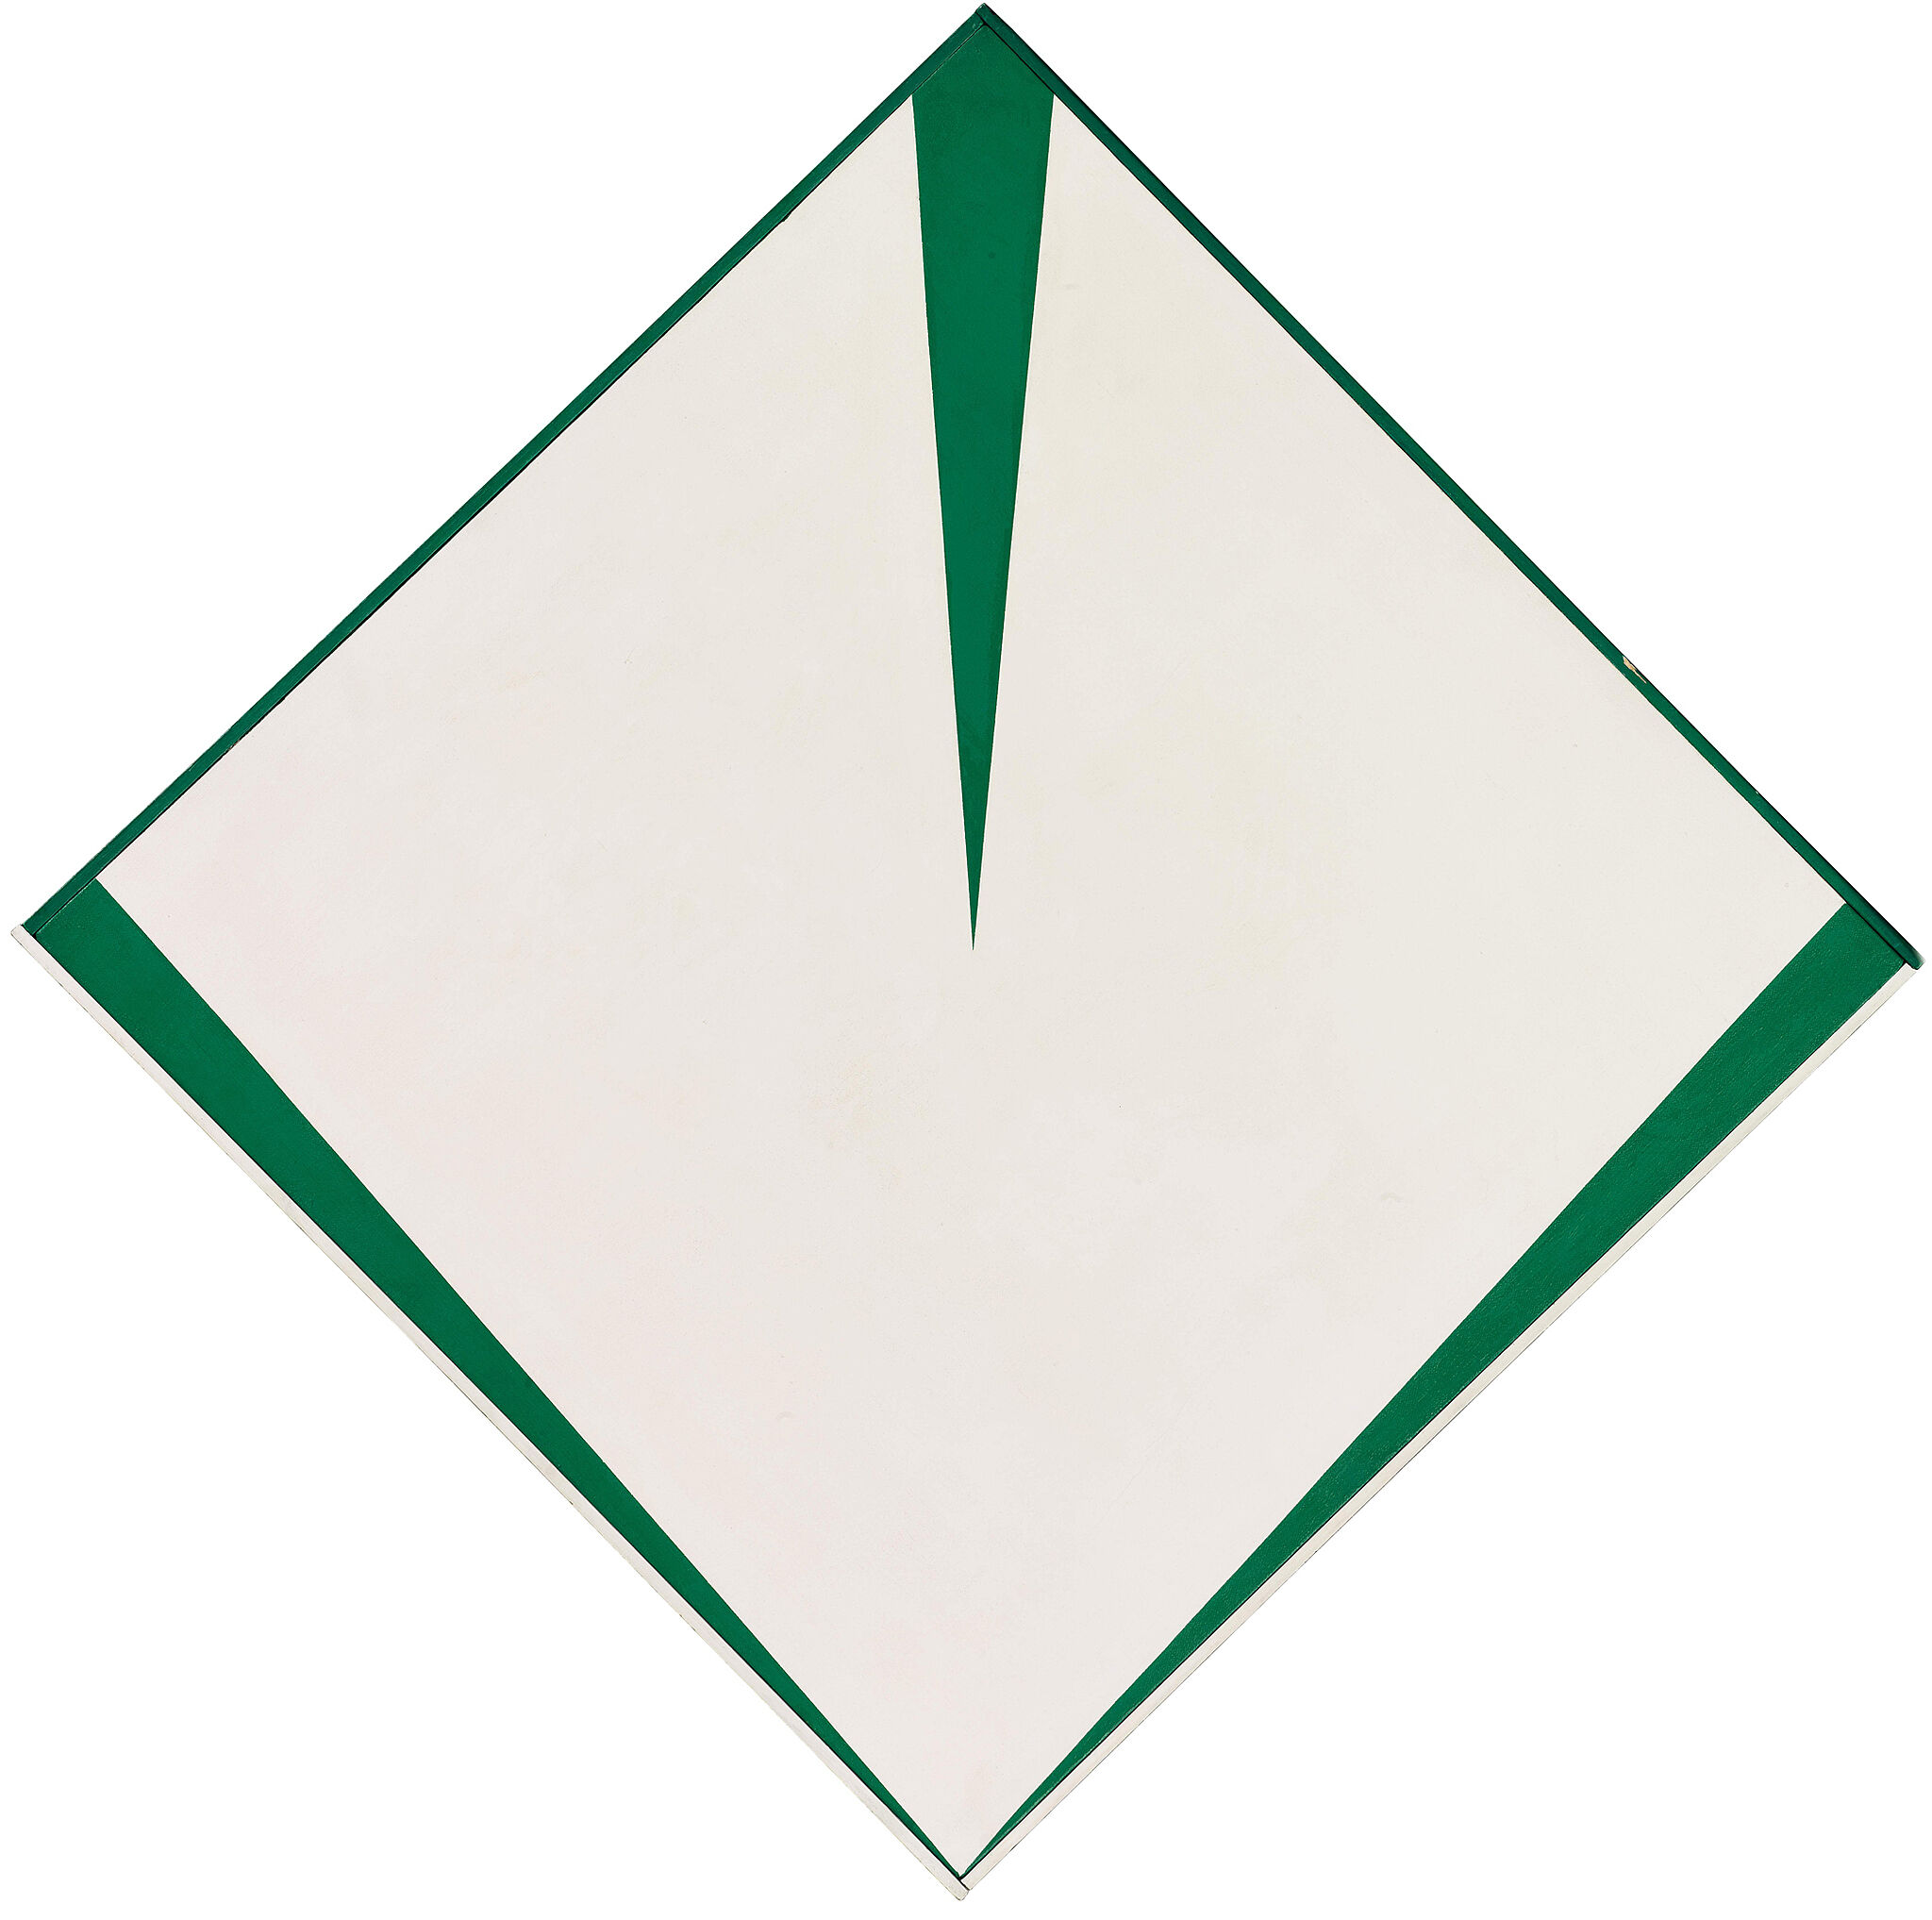 A diamond-shaped artwork in white and green by Carmen Herrera.